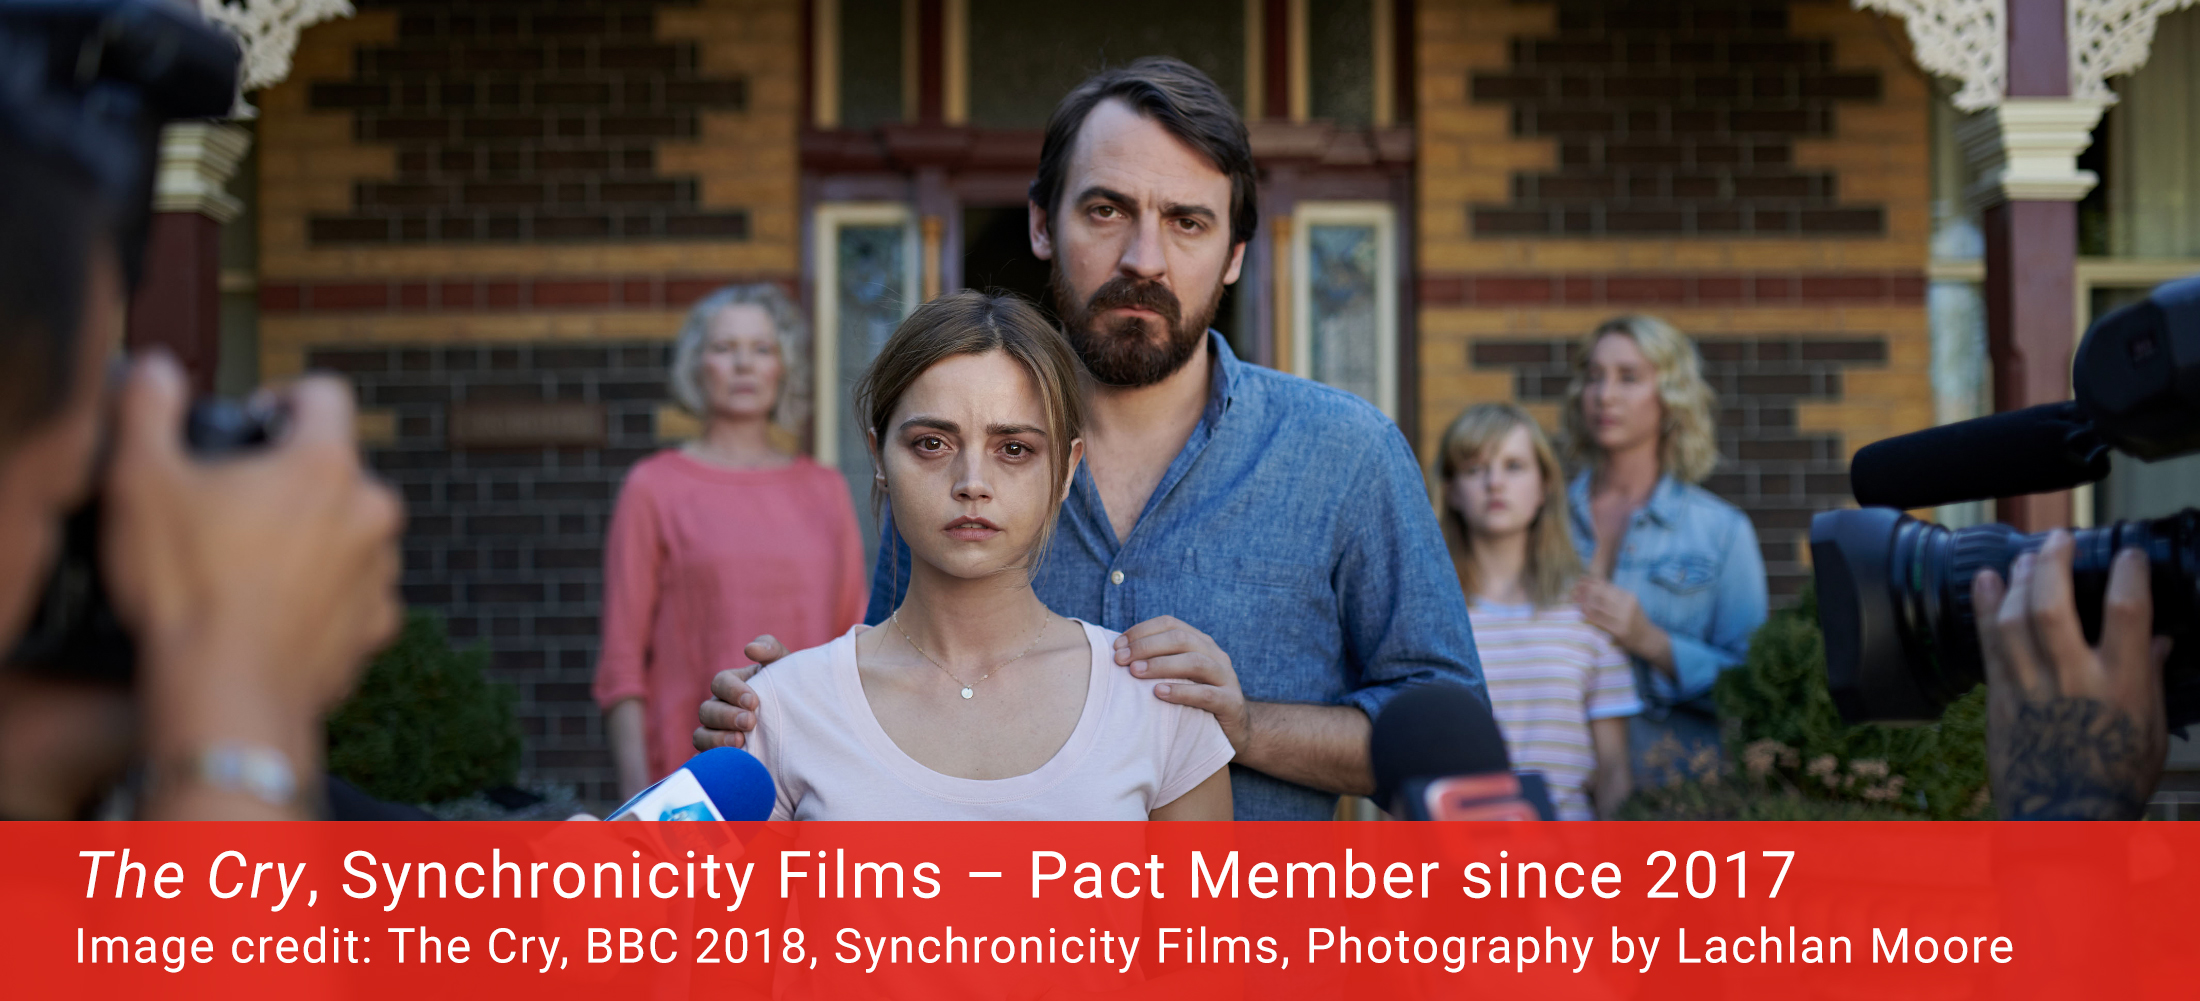 Image from The Cry, made by Pact Member Synchronicity Films.